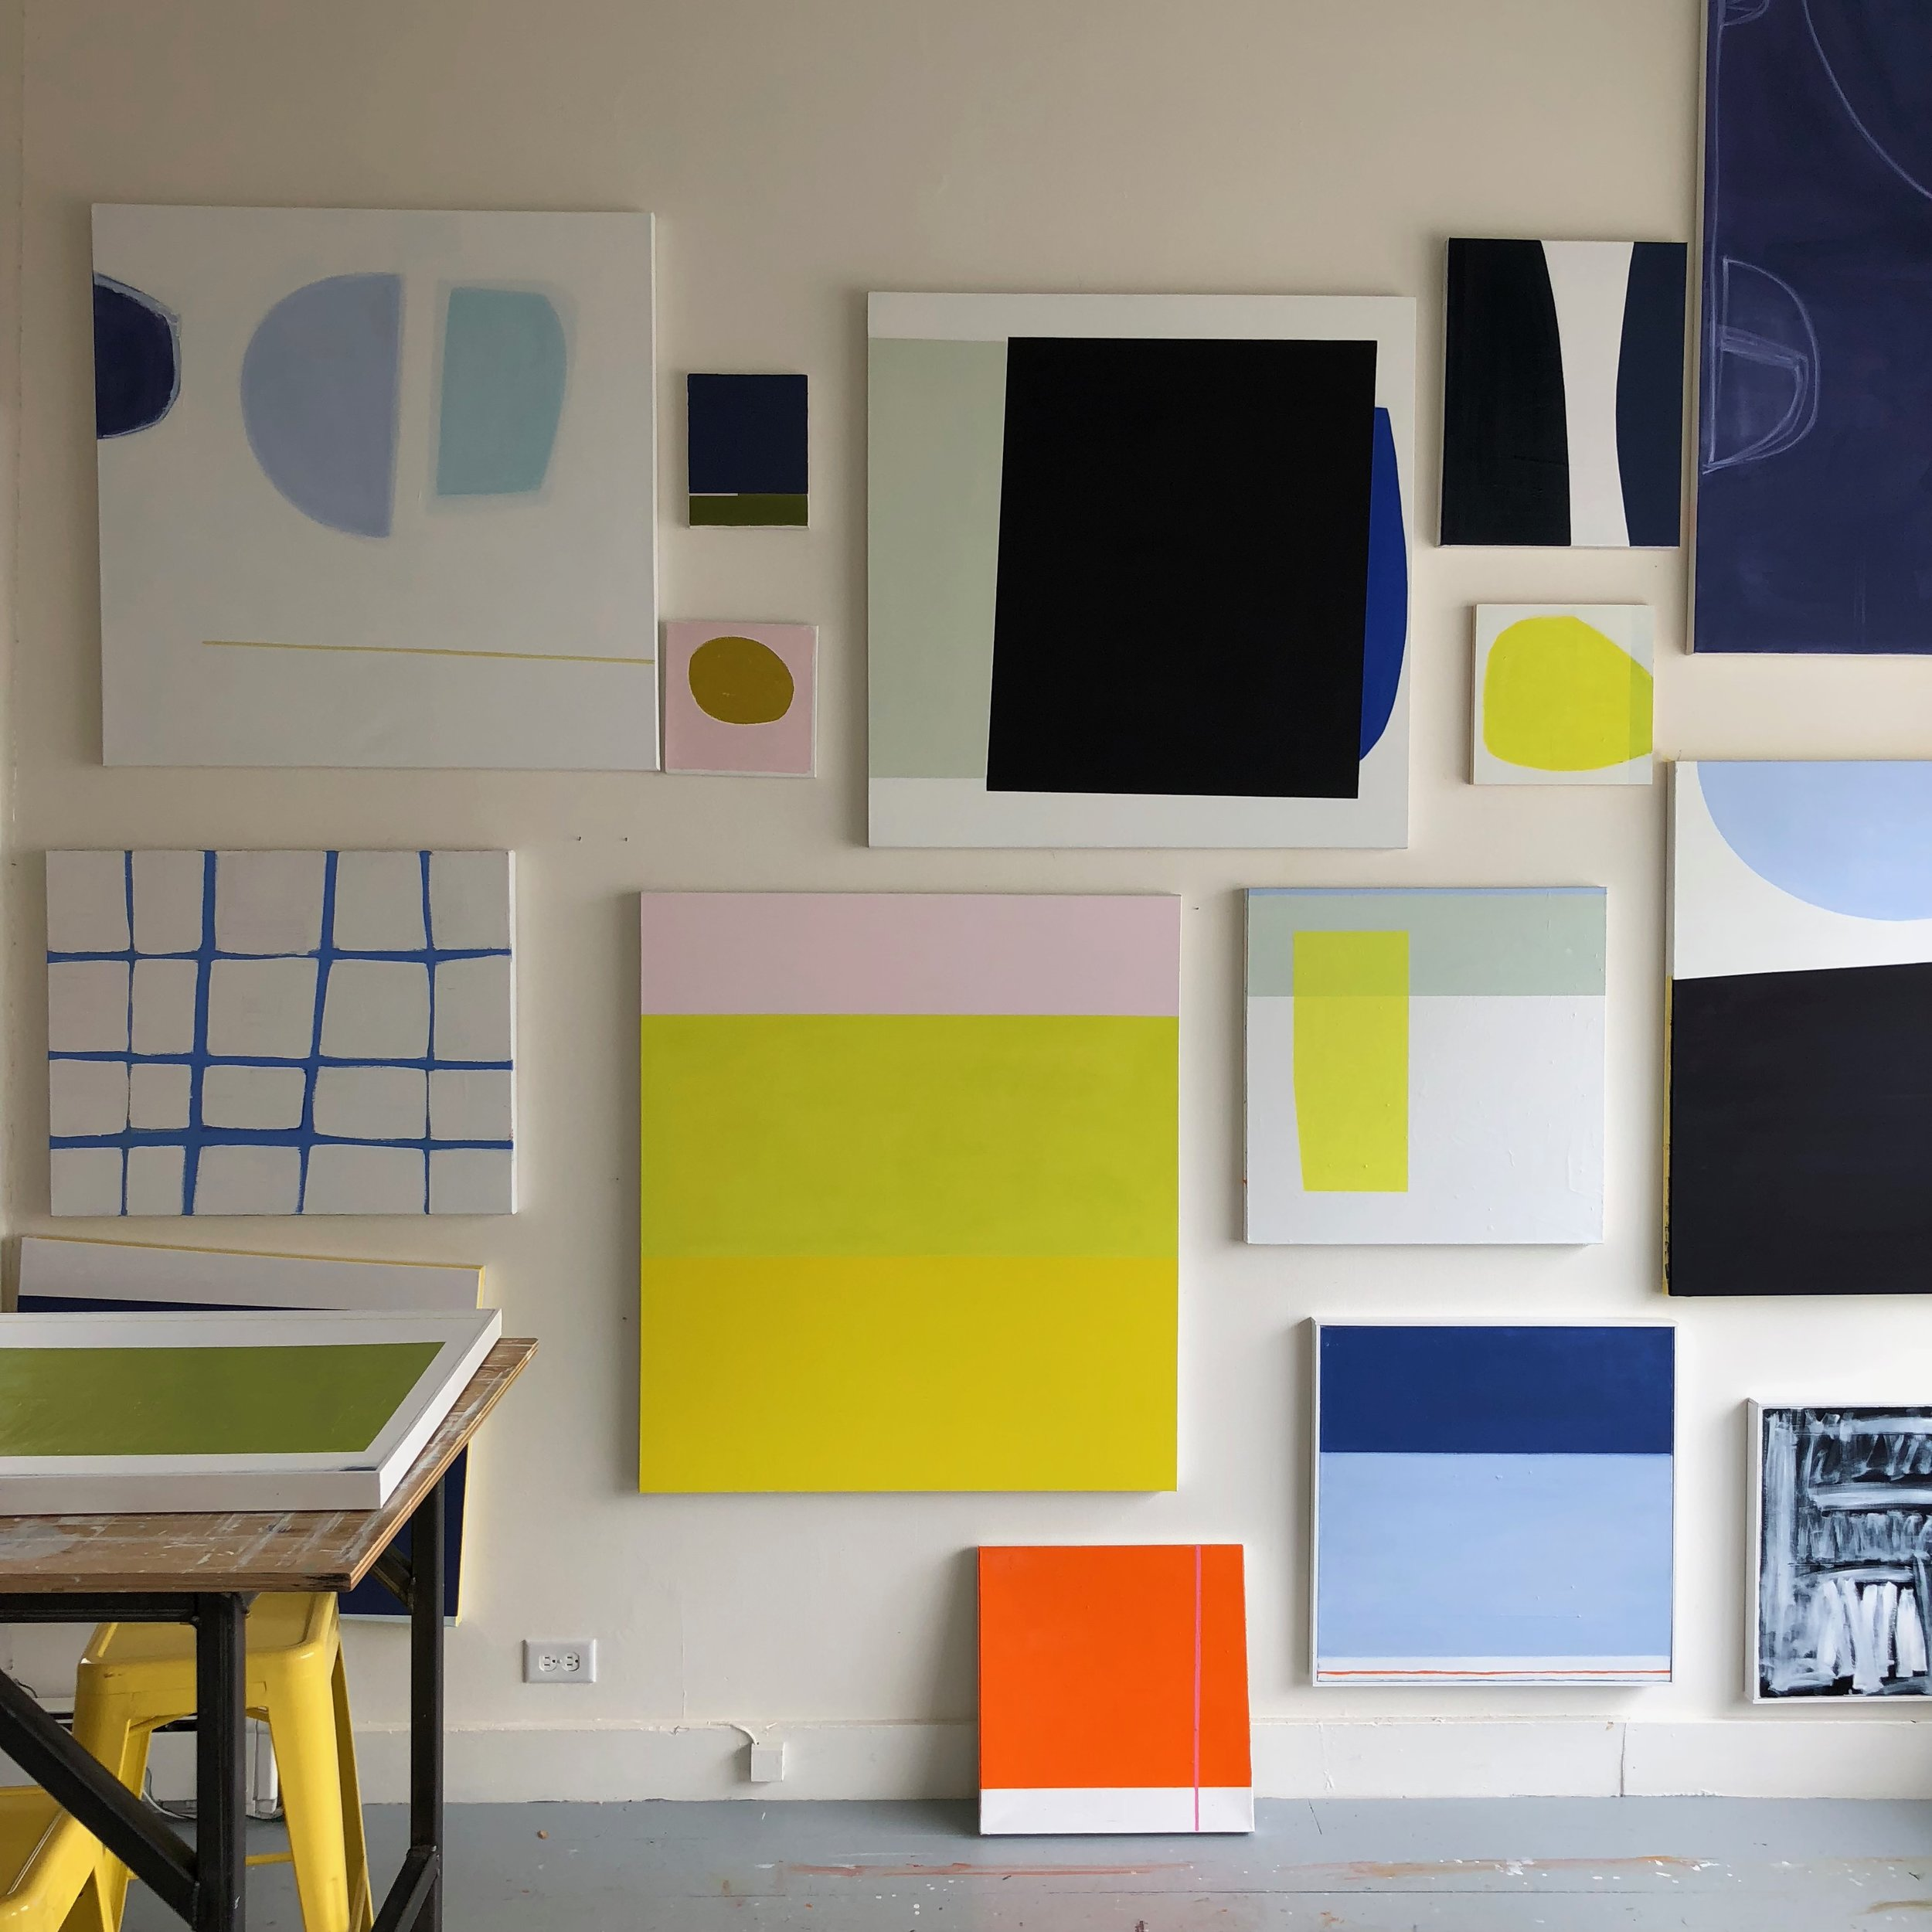 Studio wall April 2018   Laurie Fisher.jpg